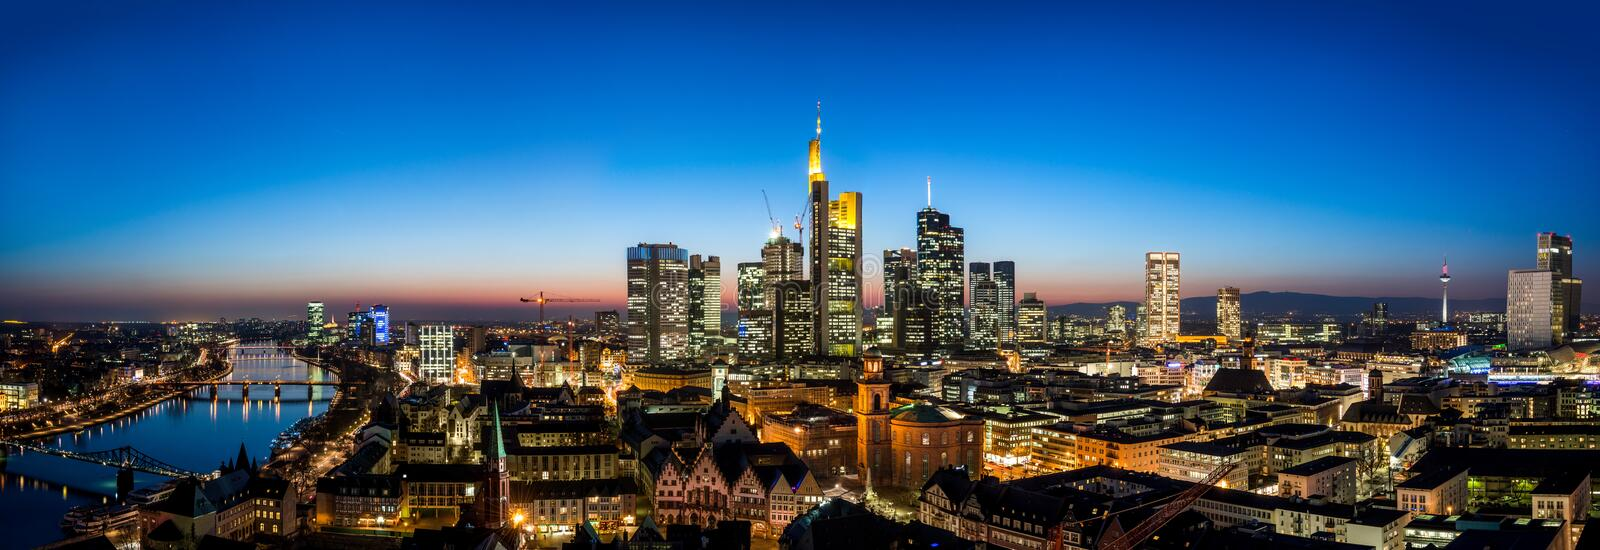 Frankfurt am Main Skyline royalty free stock photos